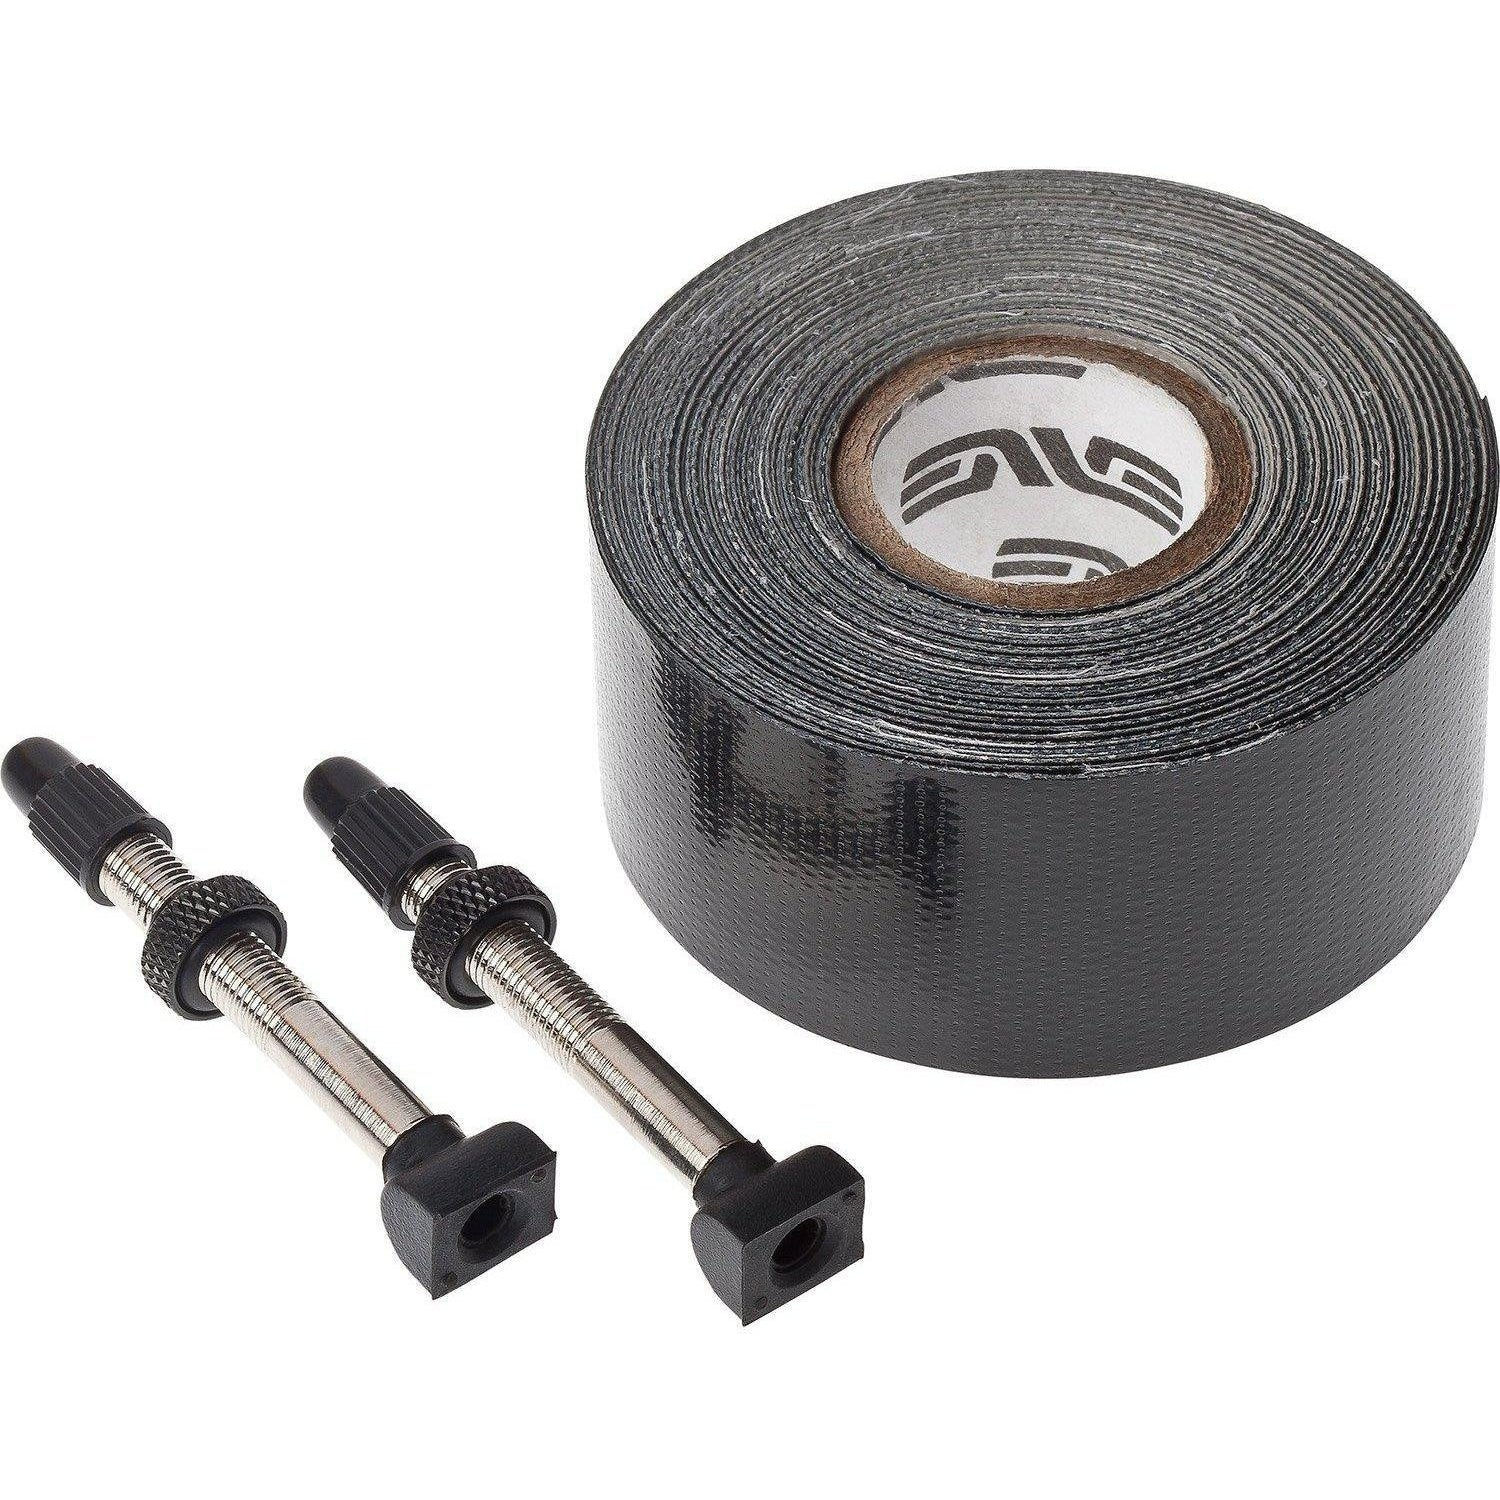 Accessories - ENVE Tubeless Rim Tapes And Valves